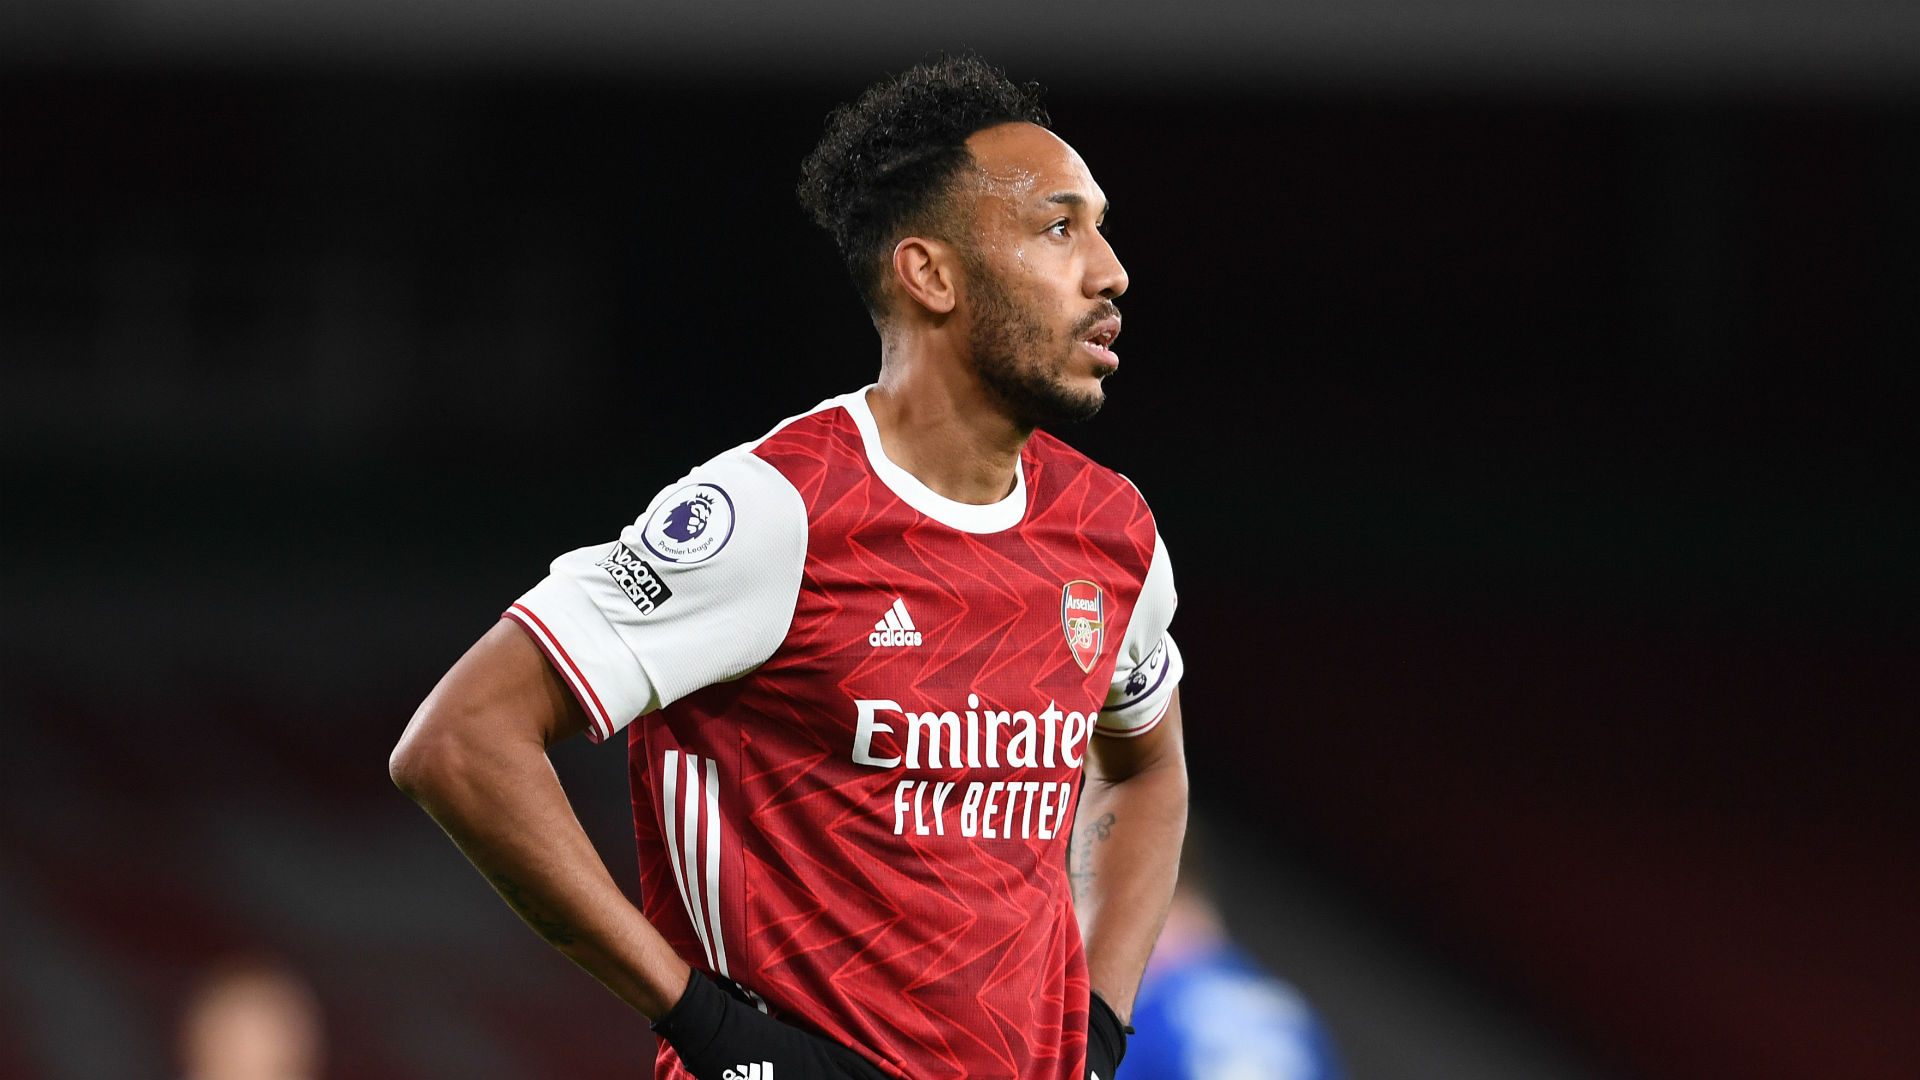 Arsenal drop Aubameyang for north London derby for disciplinary reasons, Kane and Bale start for Spurs